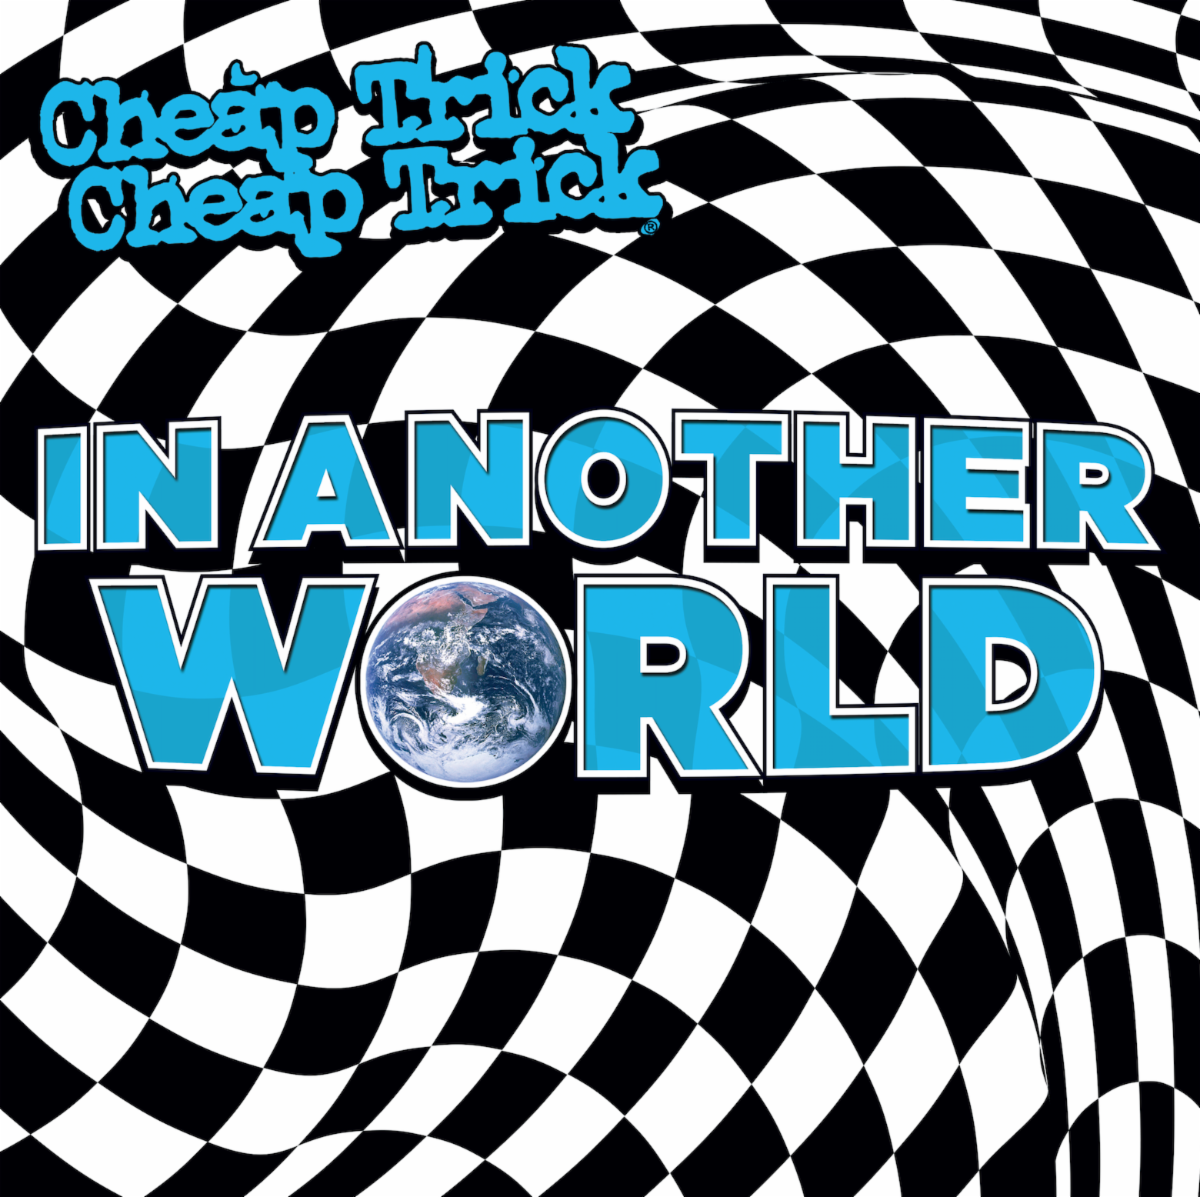 cheap trick in another world art cover Cheap Trick Announce New Album In Another World, Share Light Up the Fire: Stream